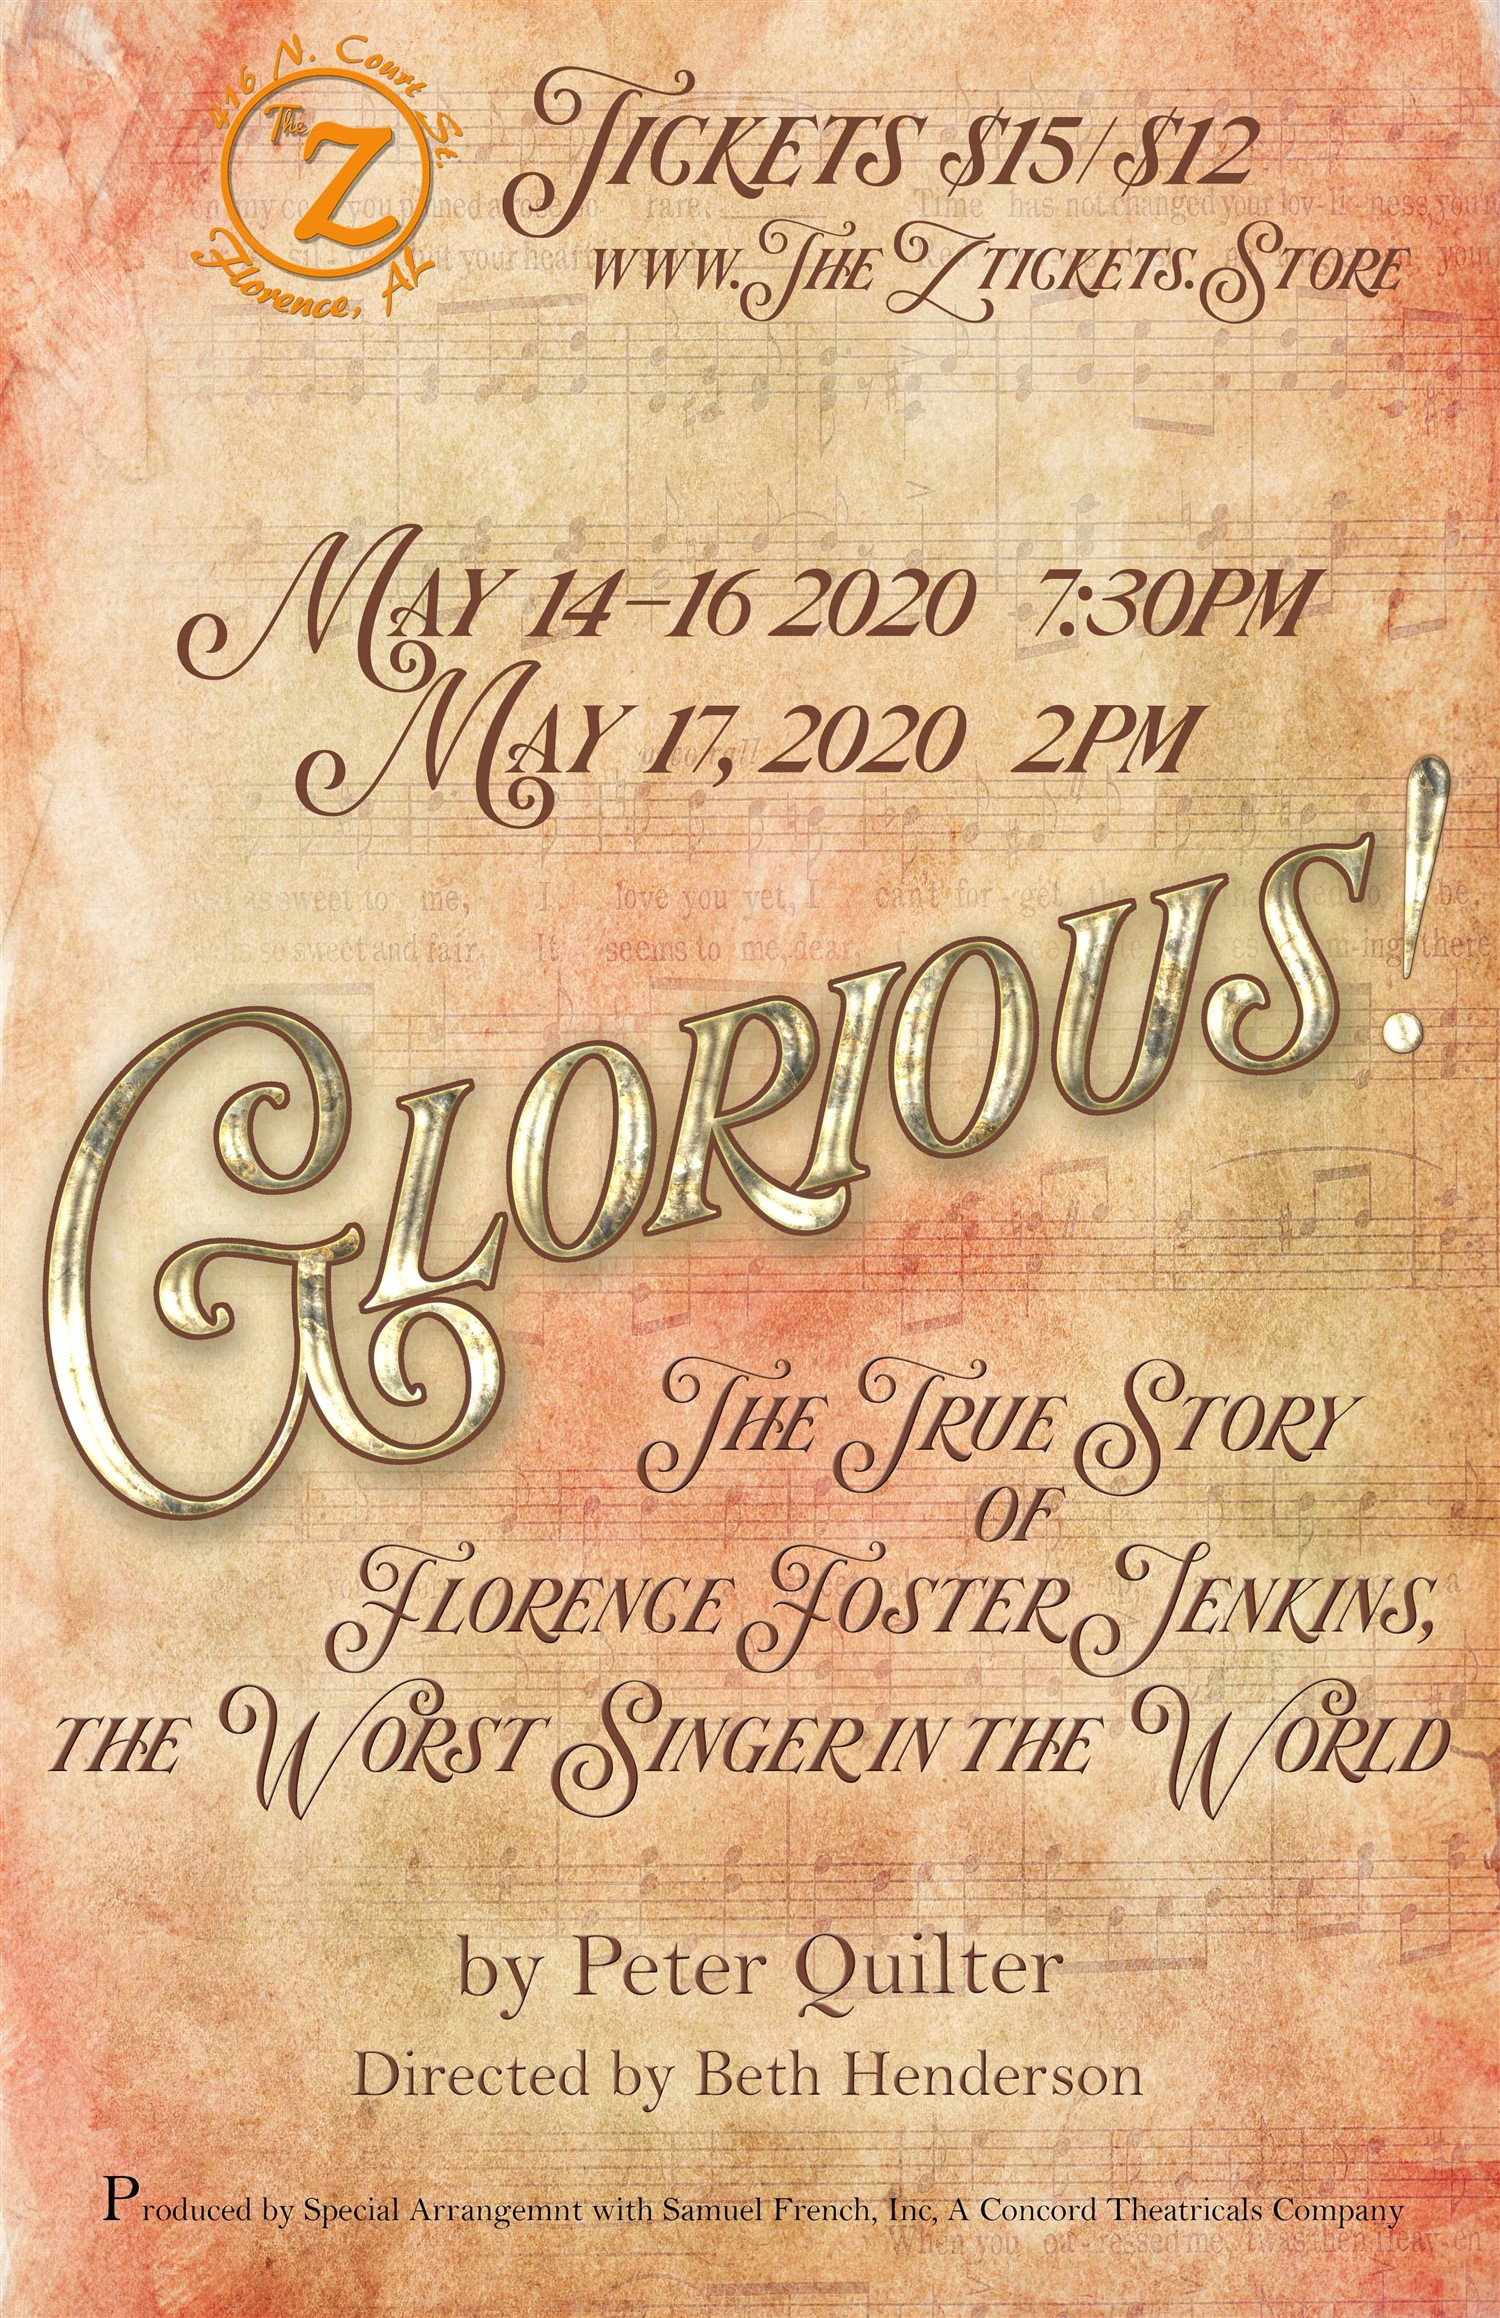 Glorious! The True Story of Florence Foster Jenkins The Worst Singer in the World on May 19, 00:00@The Z - Pick a seat, Buy tickets and Get information on Historic Zodiac Playhouse